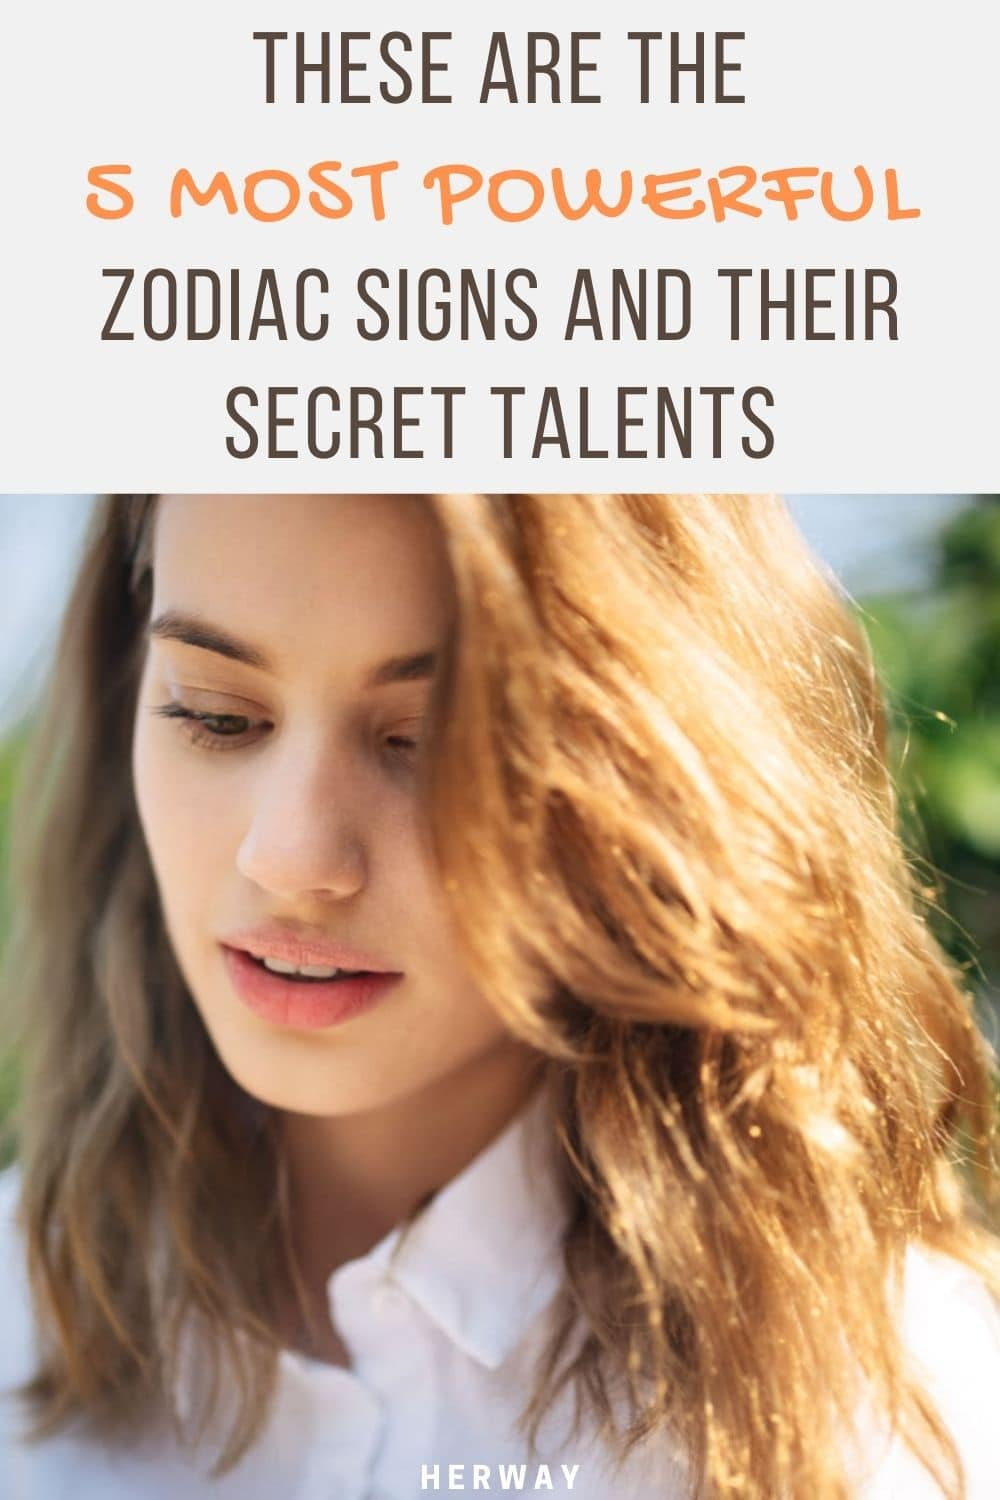 These Are The 5 Most Powerful Zodiac Signs And Their Secret Talents